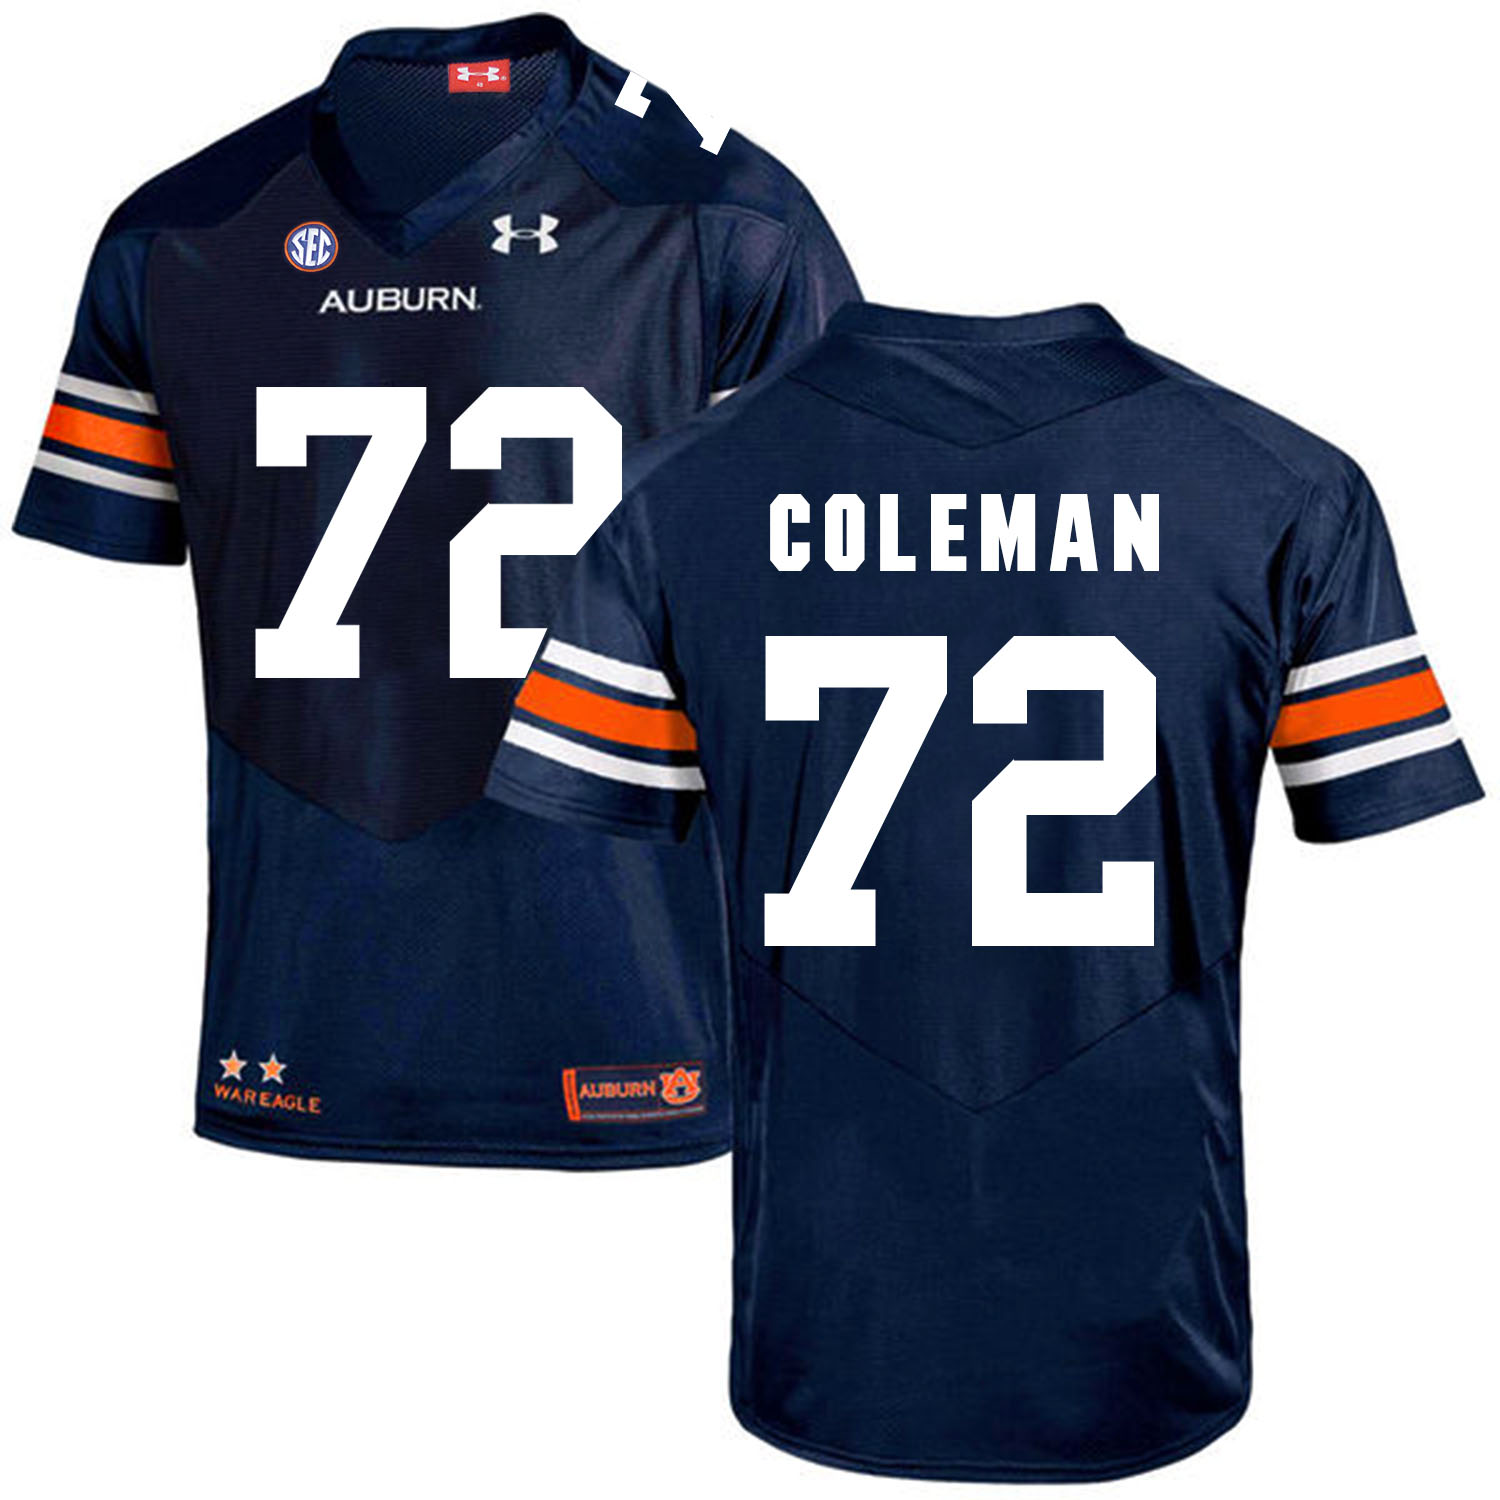 Auburn Tigers 72 Shon Coleman Navy College Football Jersey